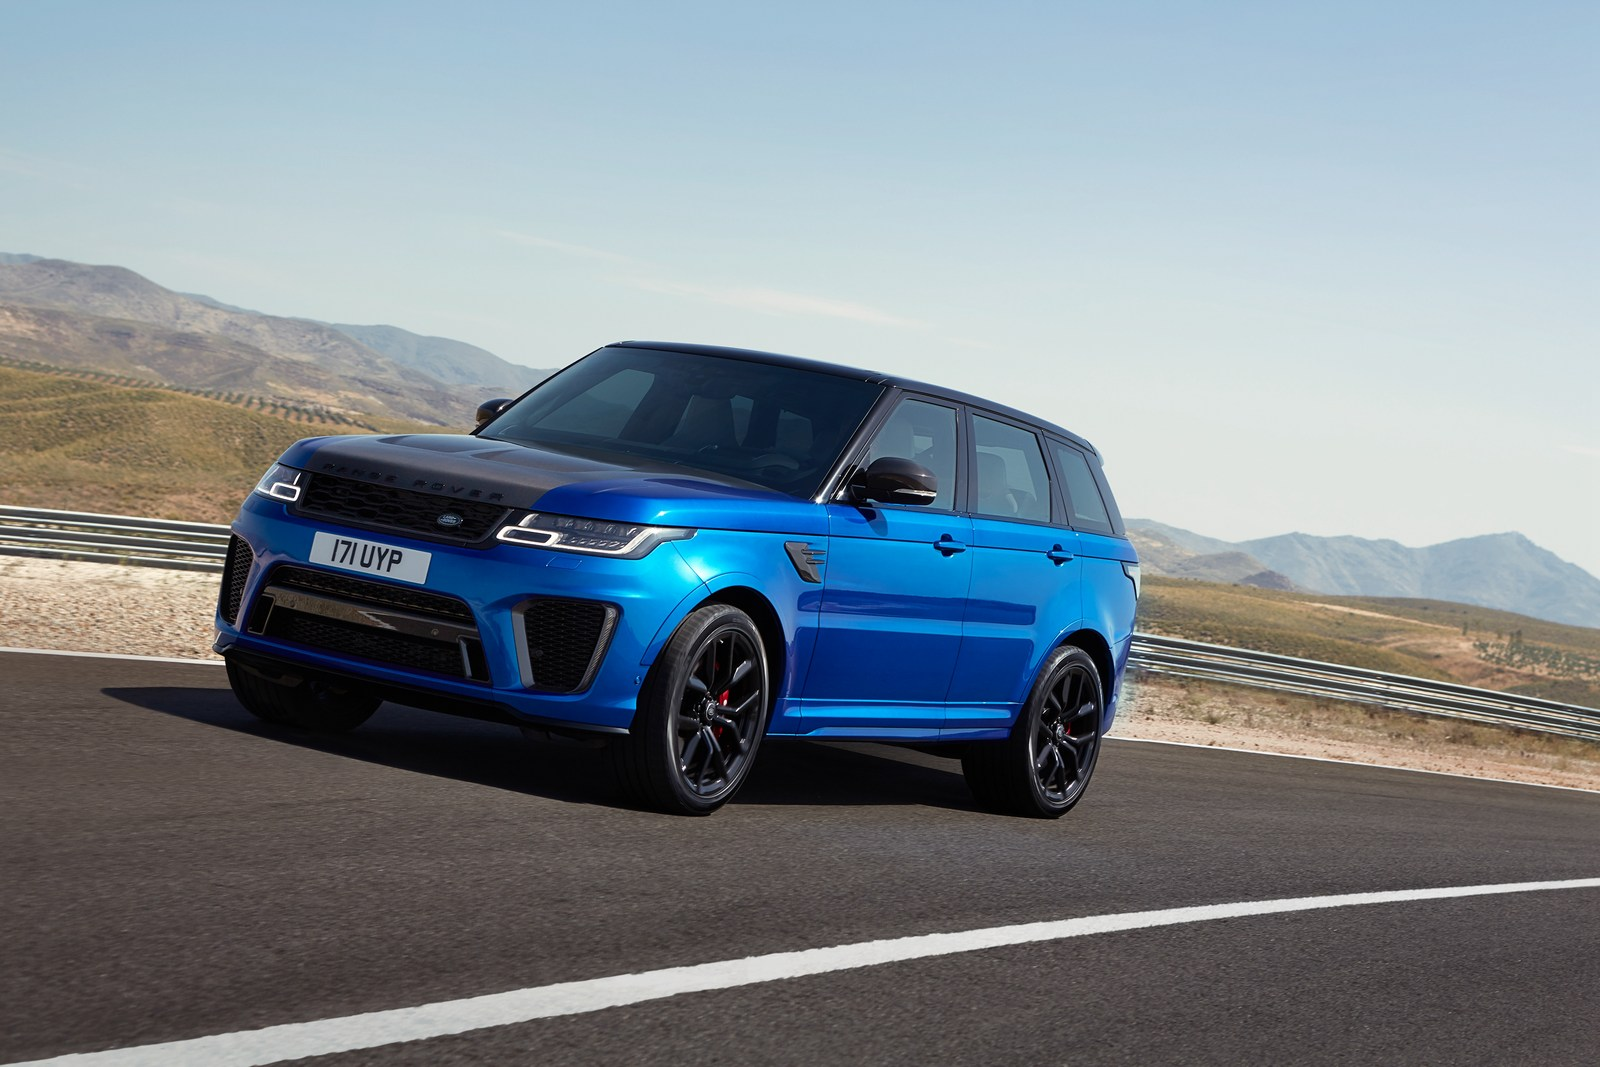 2018 range rover sport svr facelift looks ready to rumble carscoops. Black Bedroom Furniture Sets. Home Design Ideas